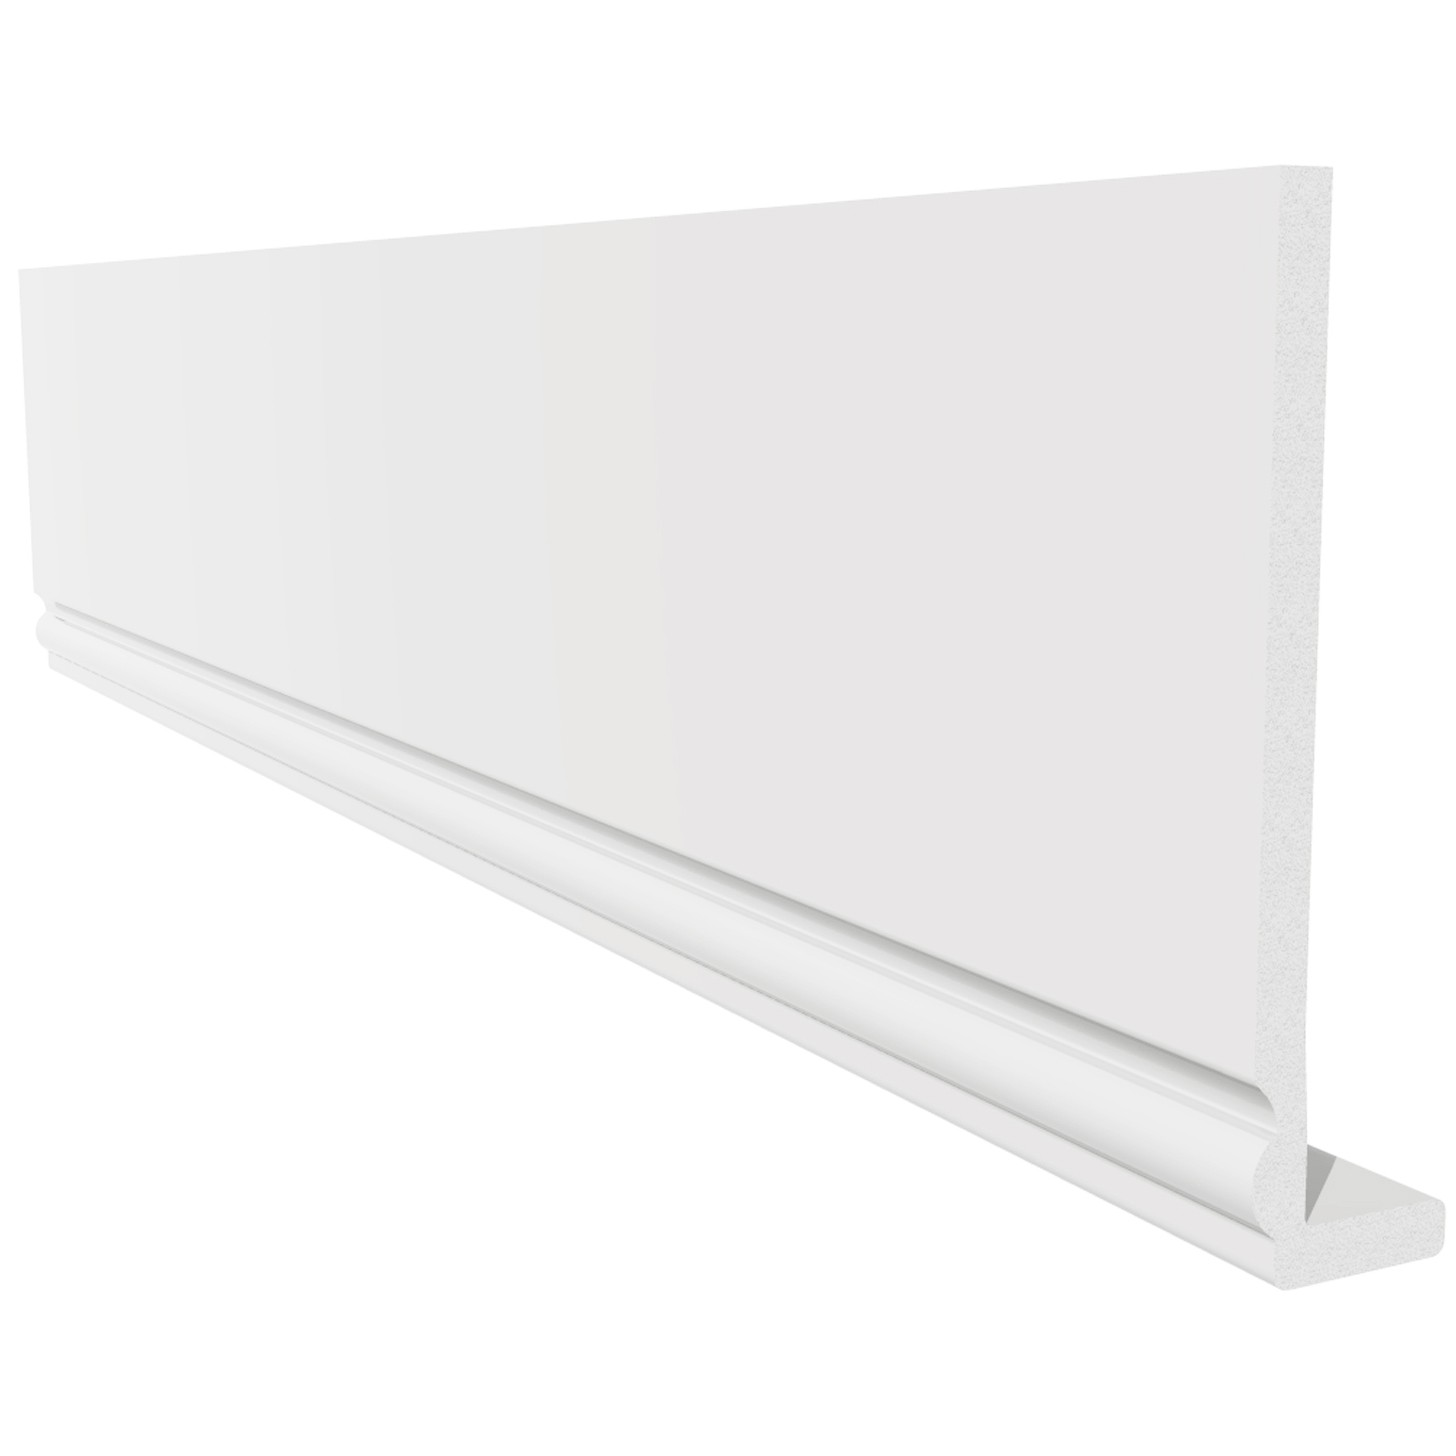 Freefoam Ogee 10mm Capping Fascia Board - White, 200mm, 5 Metre